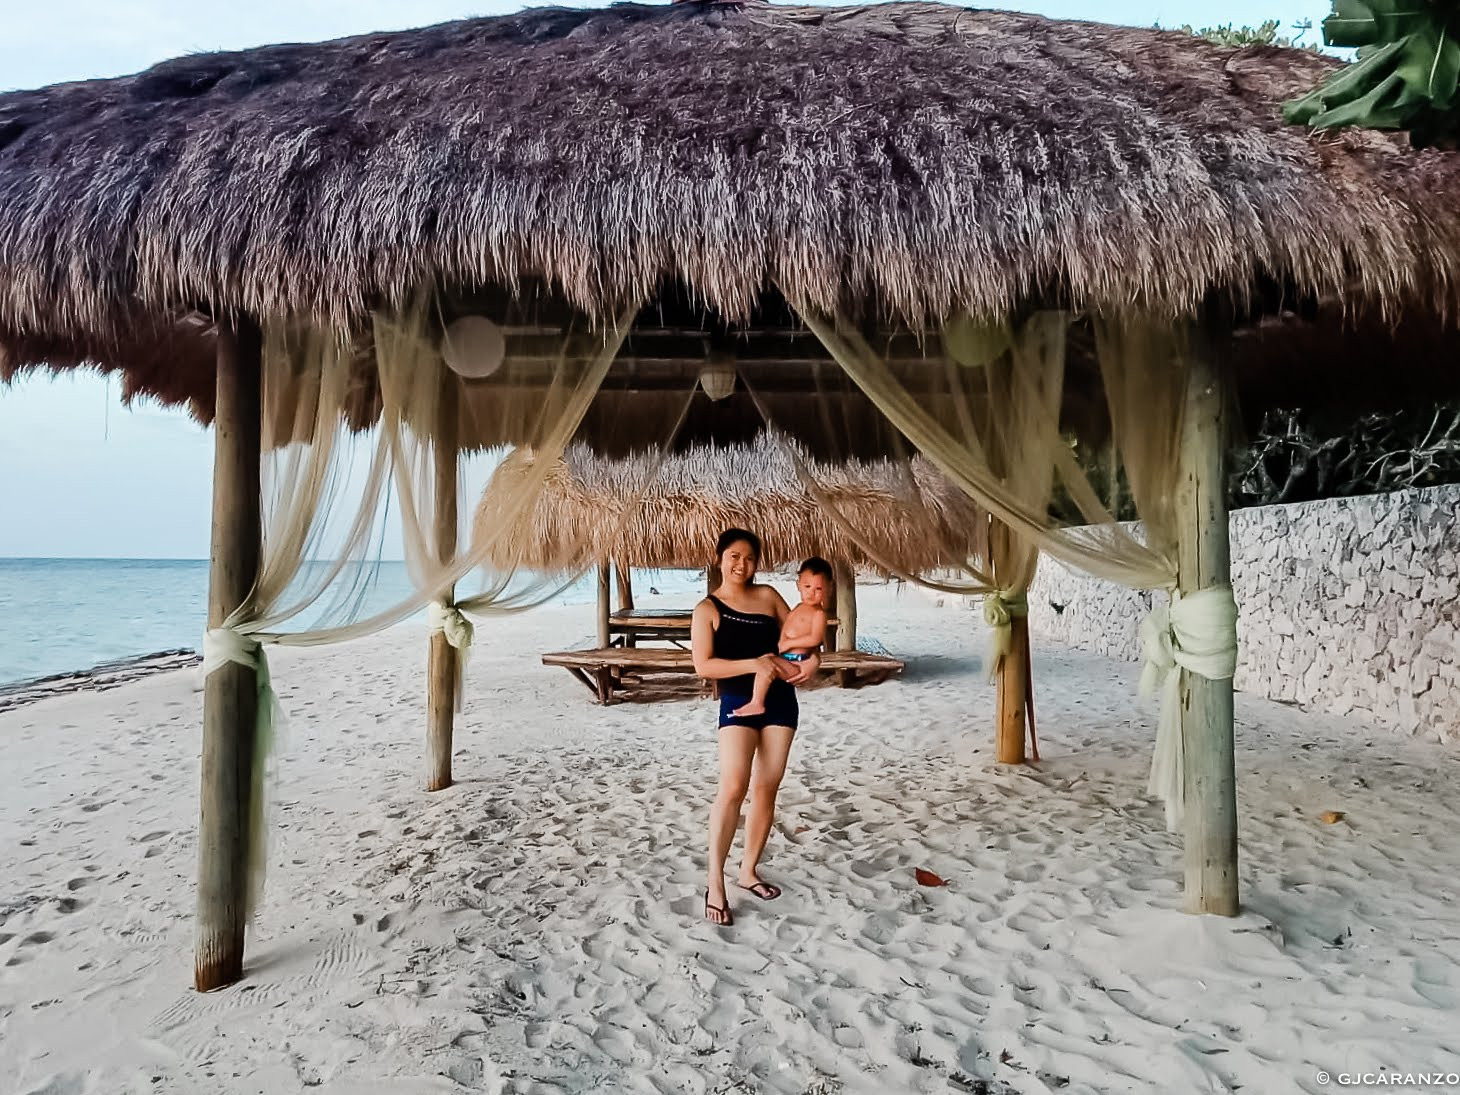 Sumilon Island - Moalboal: Things To Do in Cebu, Philippines